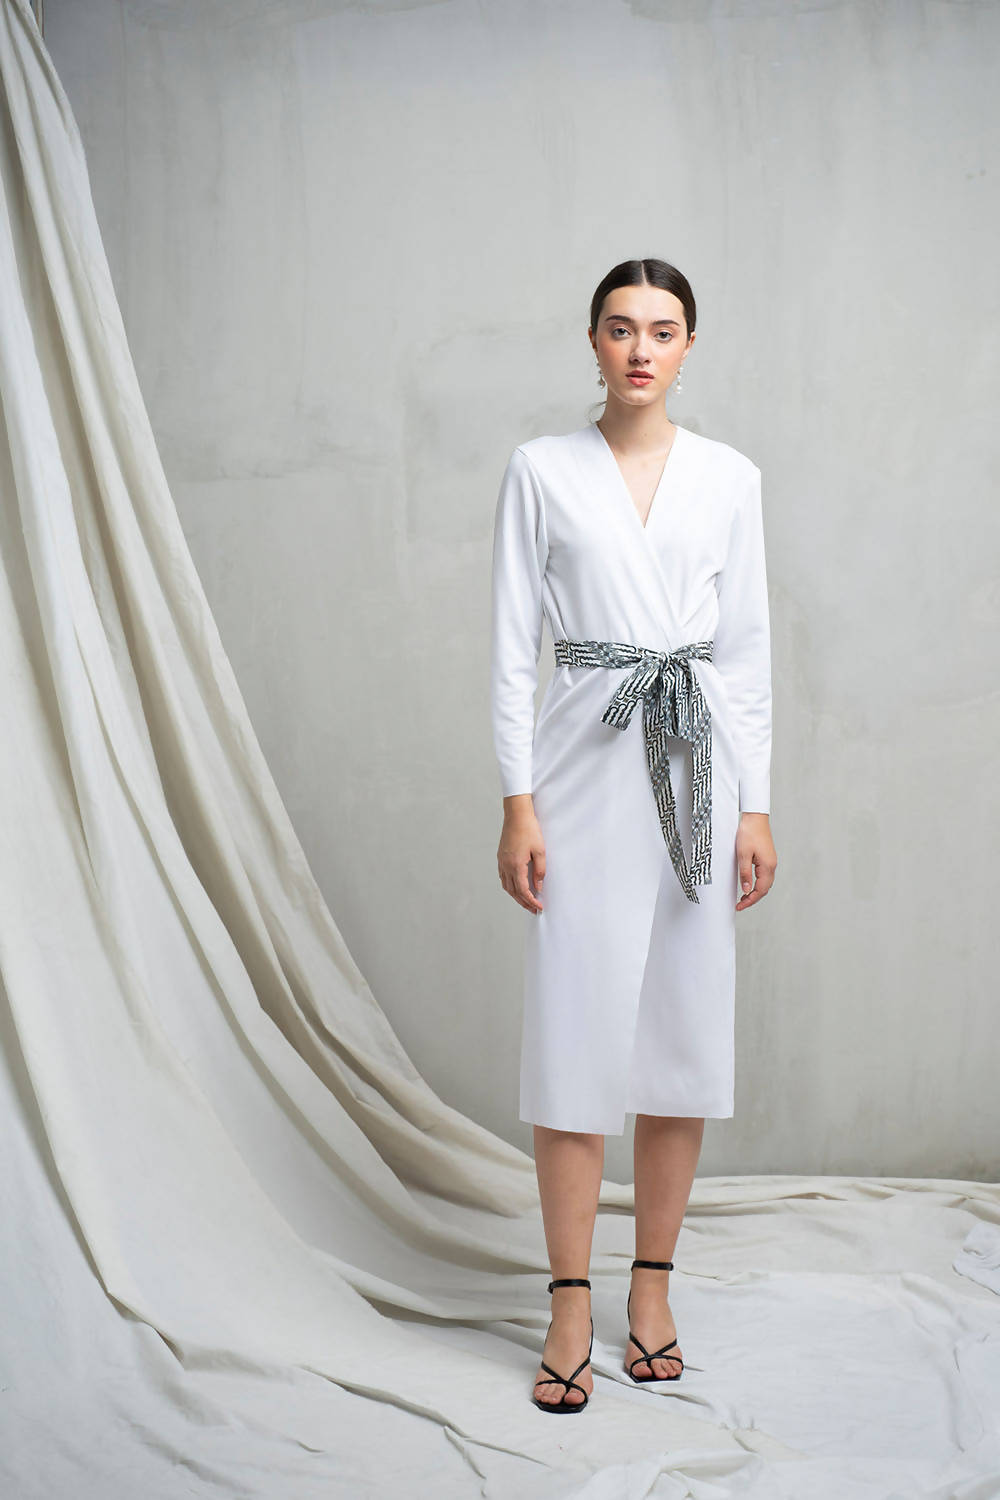 Yora Kimono Dress in White